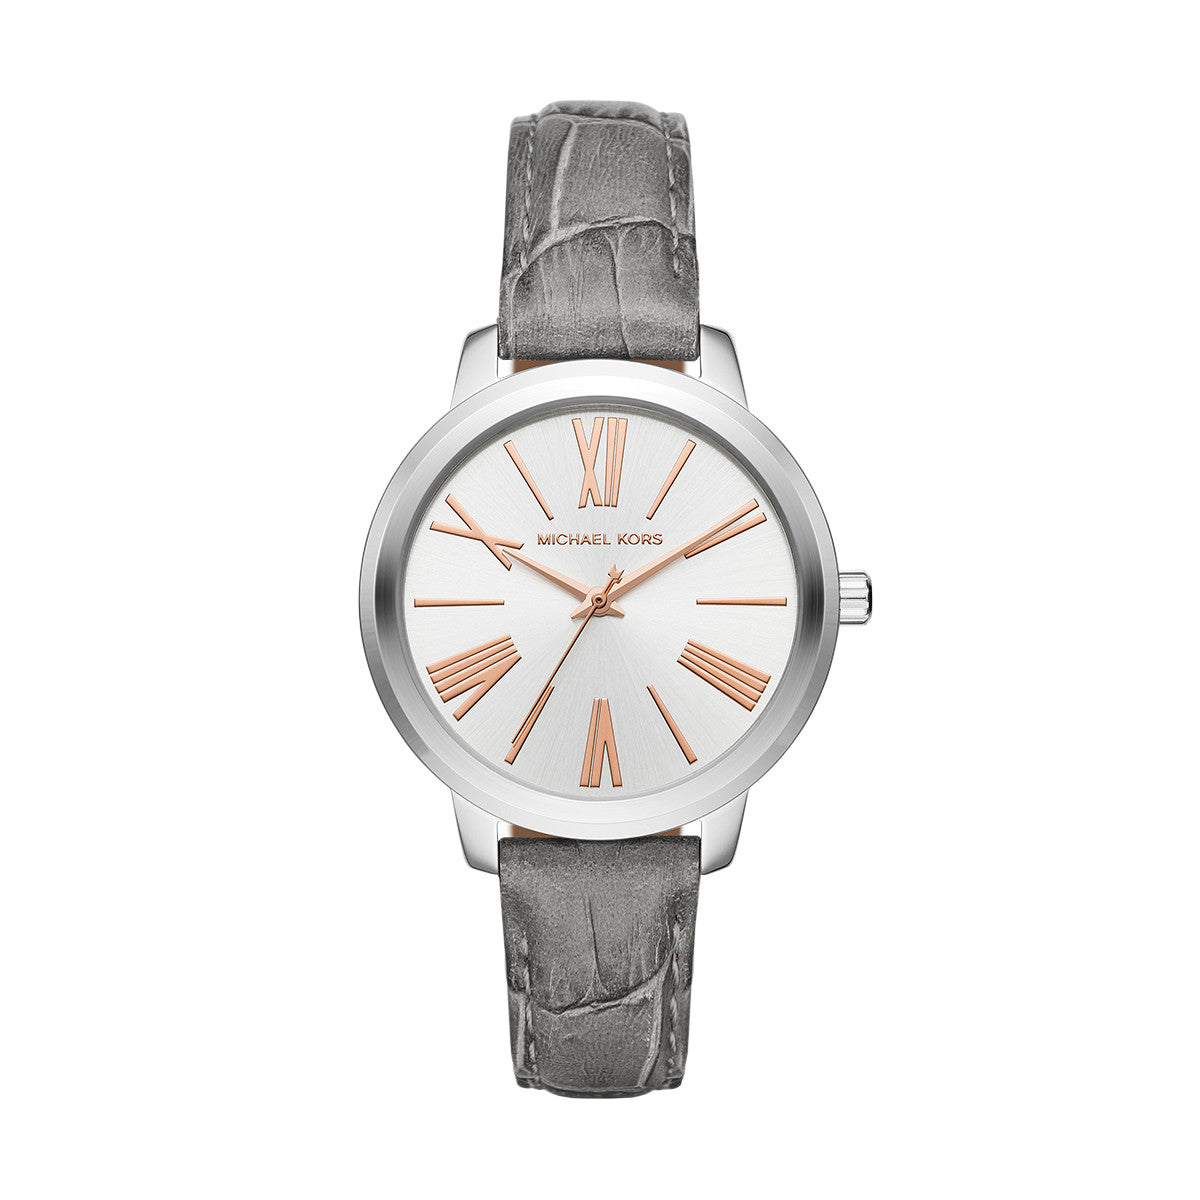 Hartman Gray Leather and Stainless Steel 3 Hand Watch